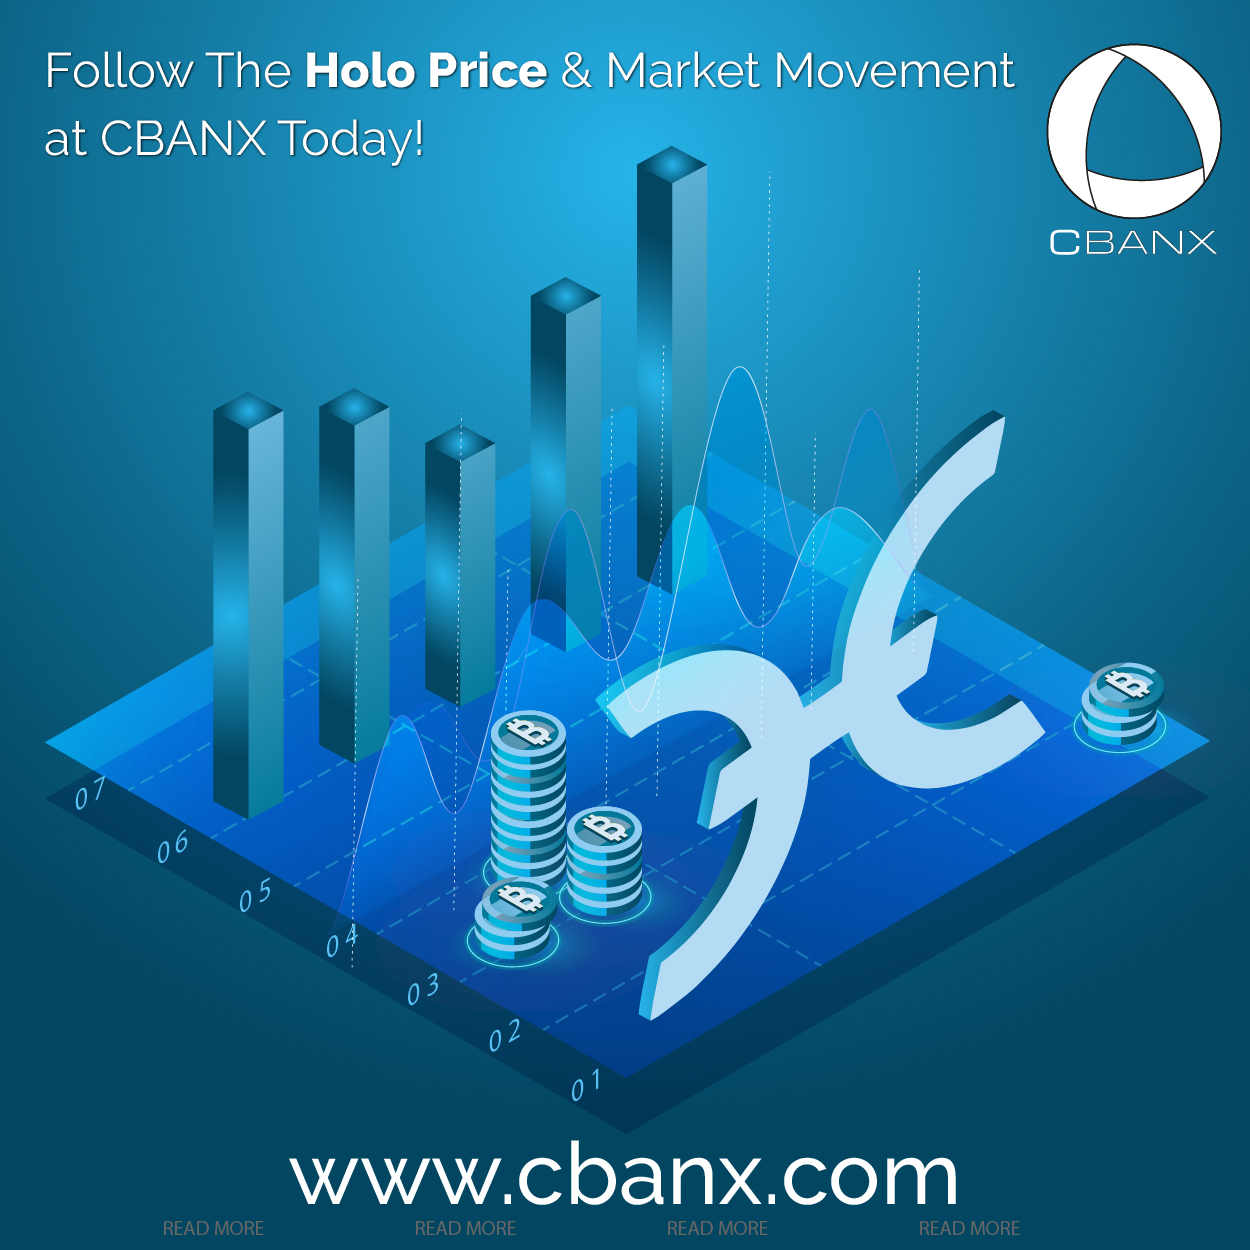 Follow The Holo Price And Market Movement at CBANX Today!